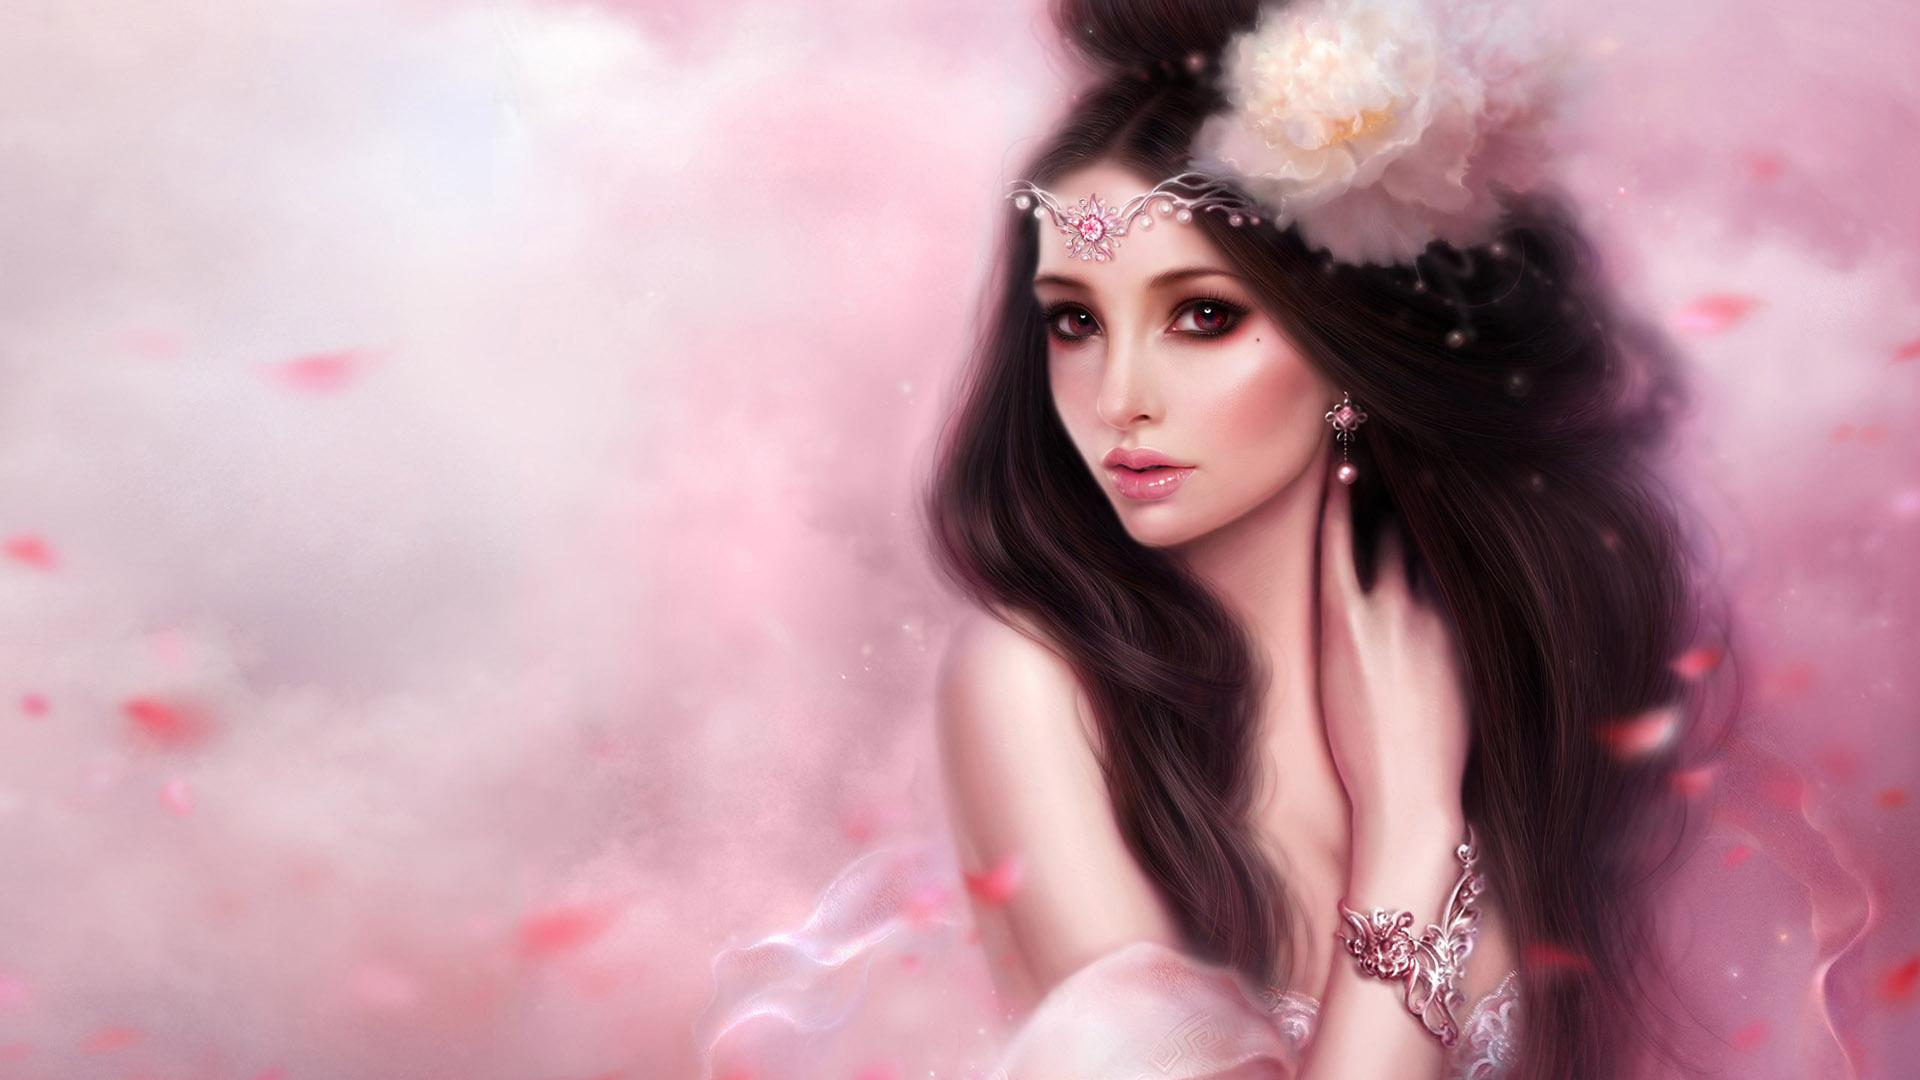 ... fantasy-women-wallpapers-hd